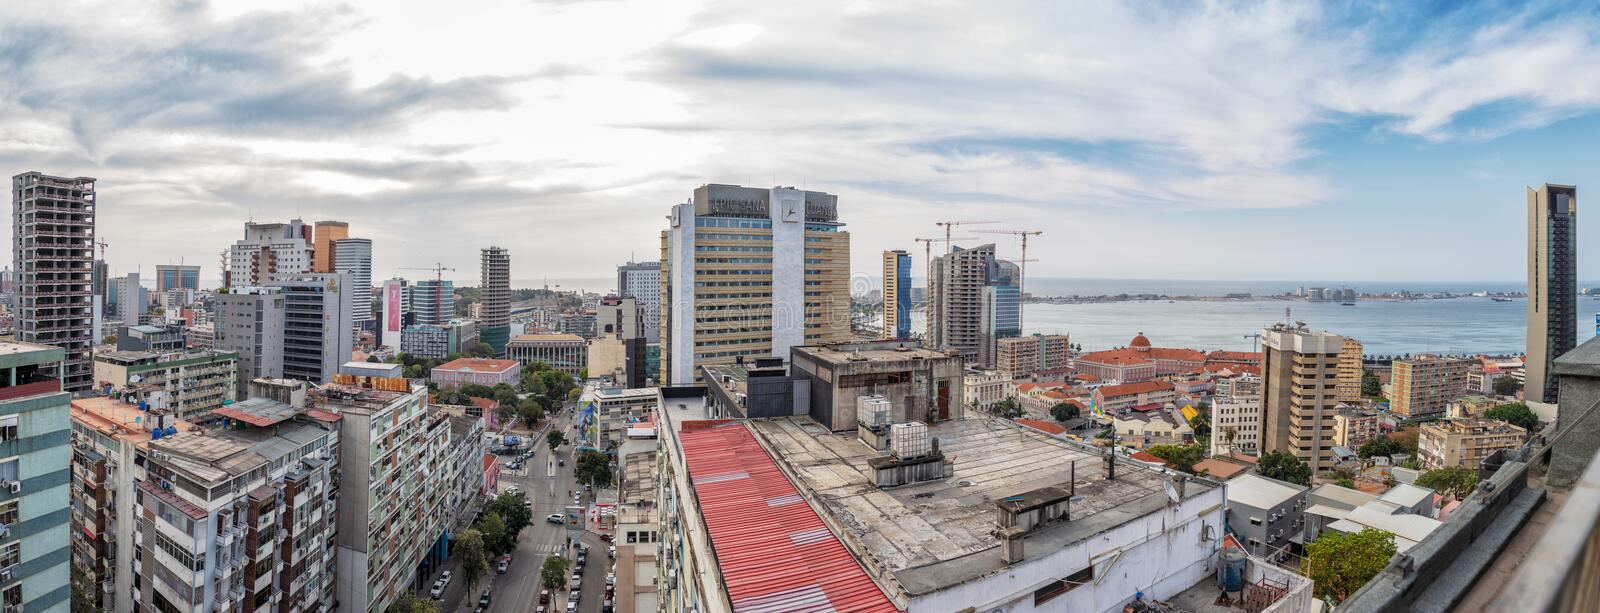 20OUT2019 - LUANDA-ANGOLA - Beautiful view of Luanda city, difference between worlds, the degraded and the new. Angola. Detail royalty free stock photos